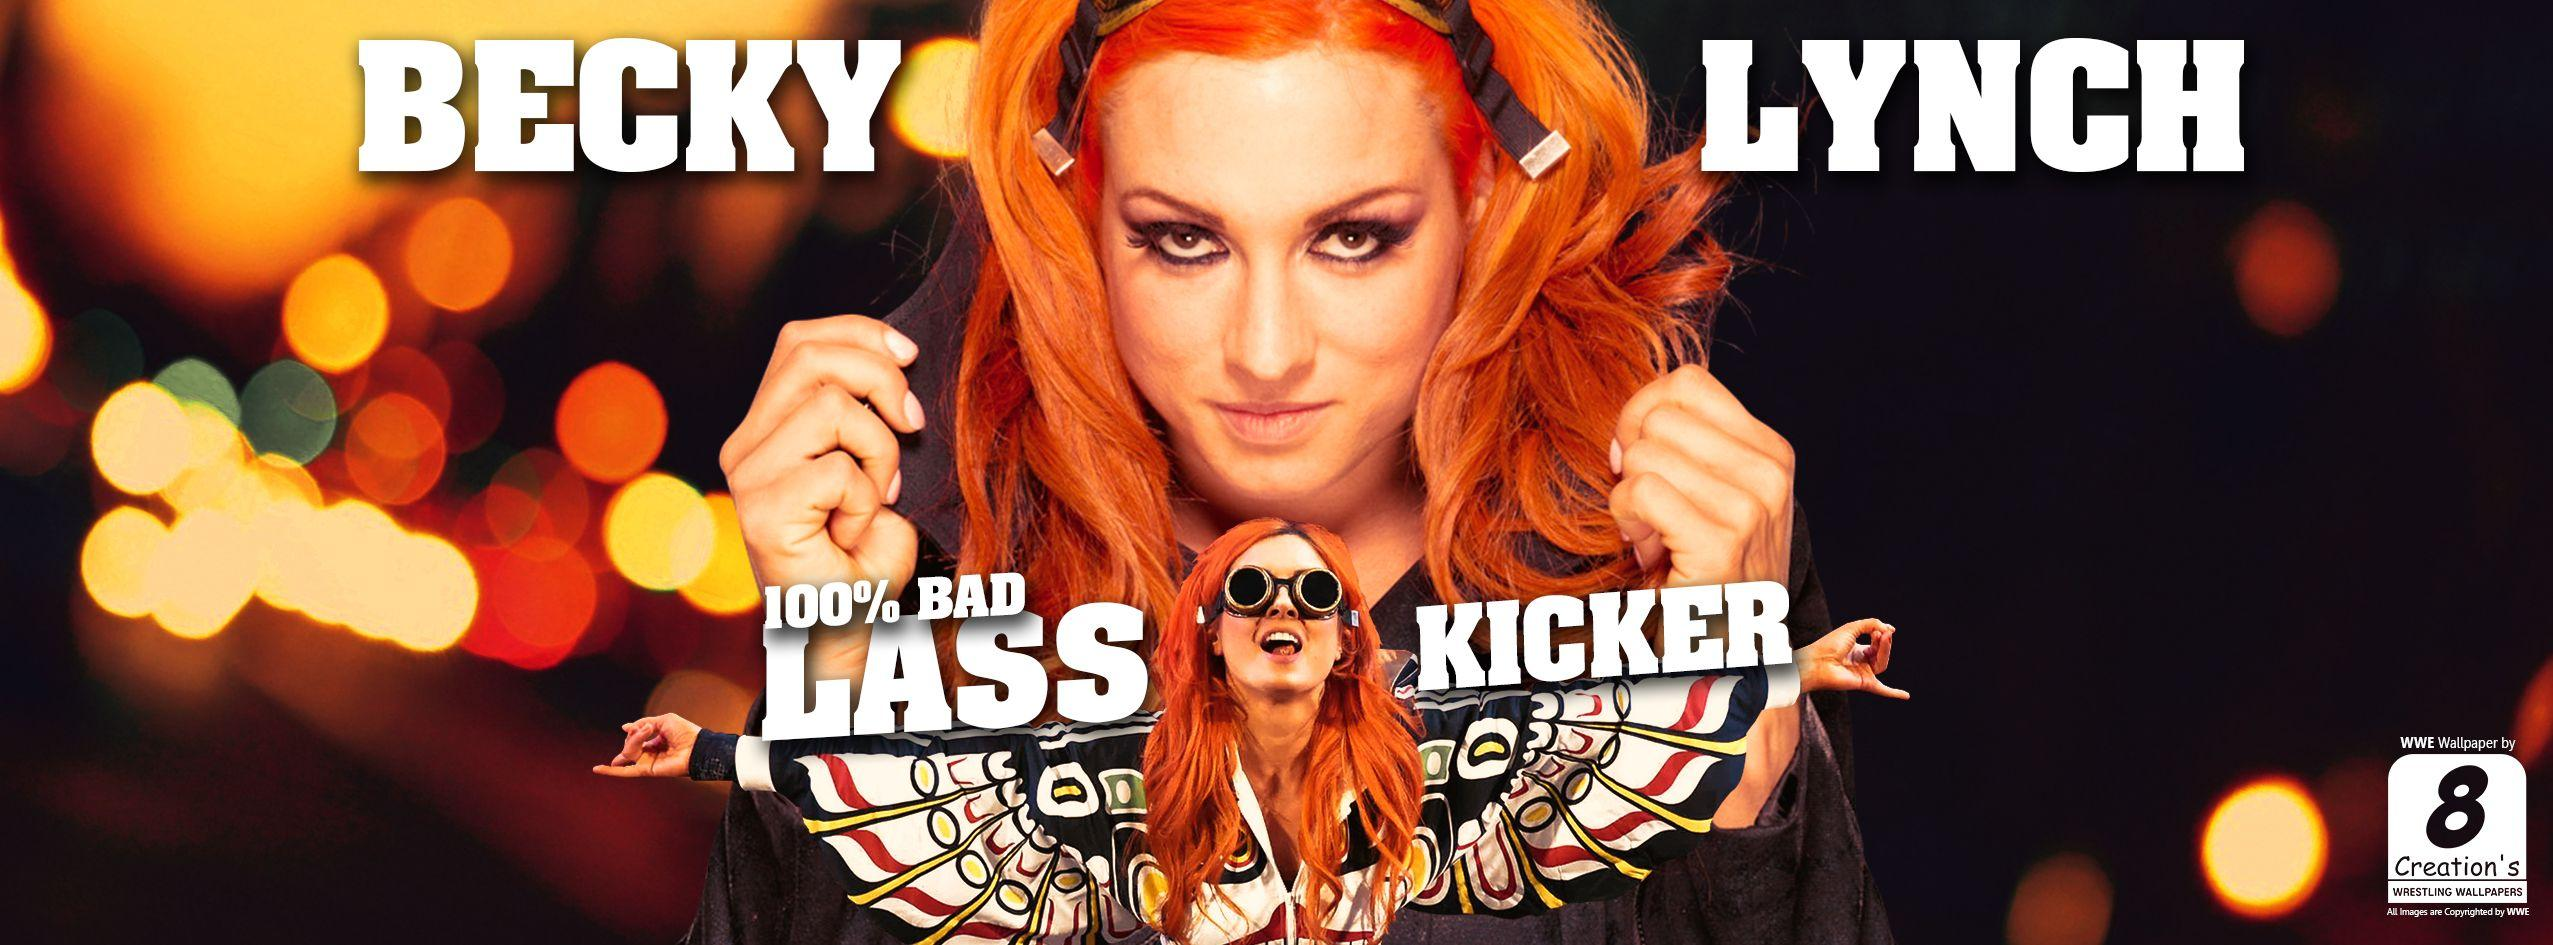 Becky Lynch Facebook Cover Photo by Arunraj1791